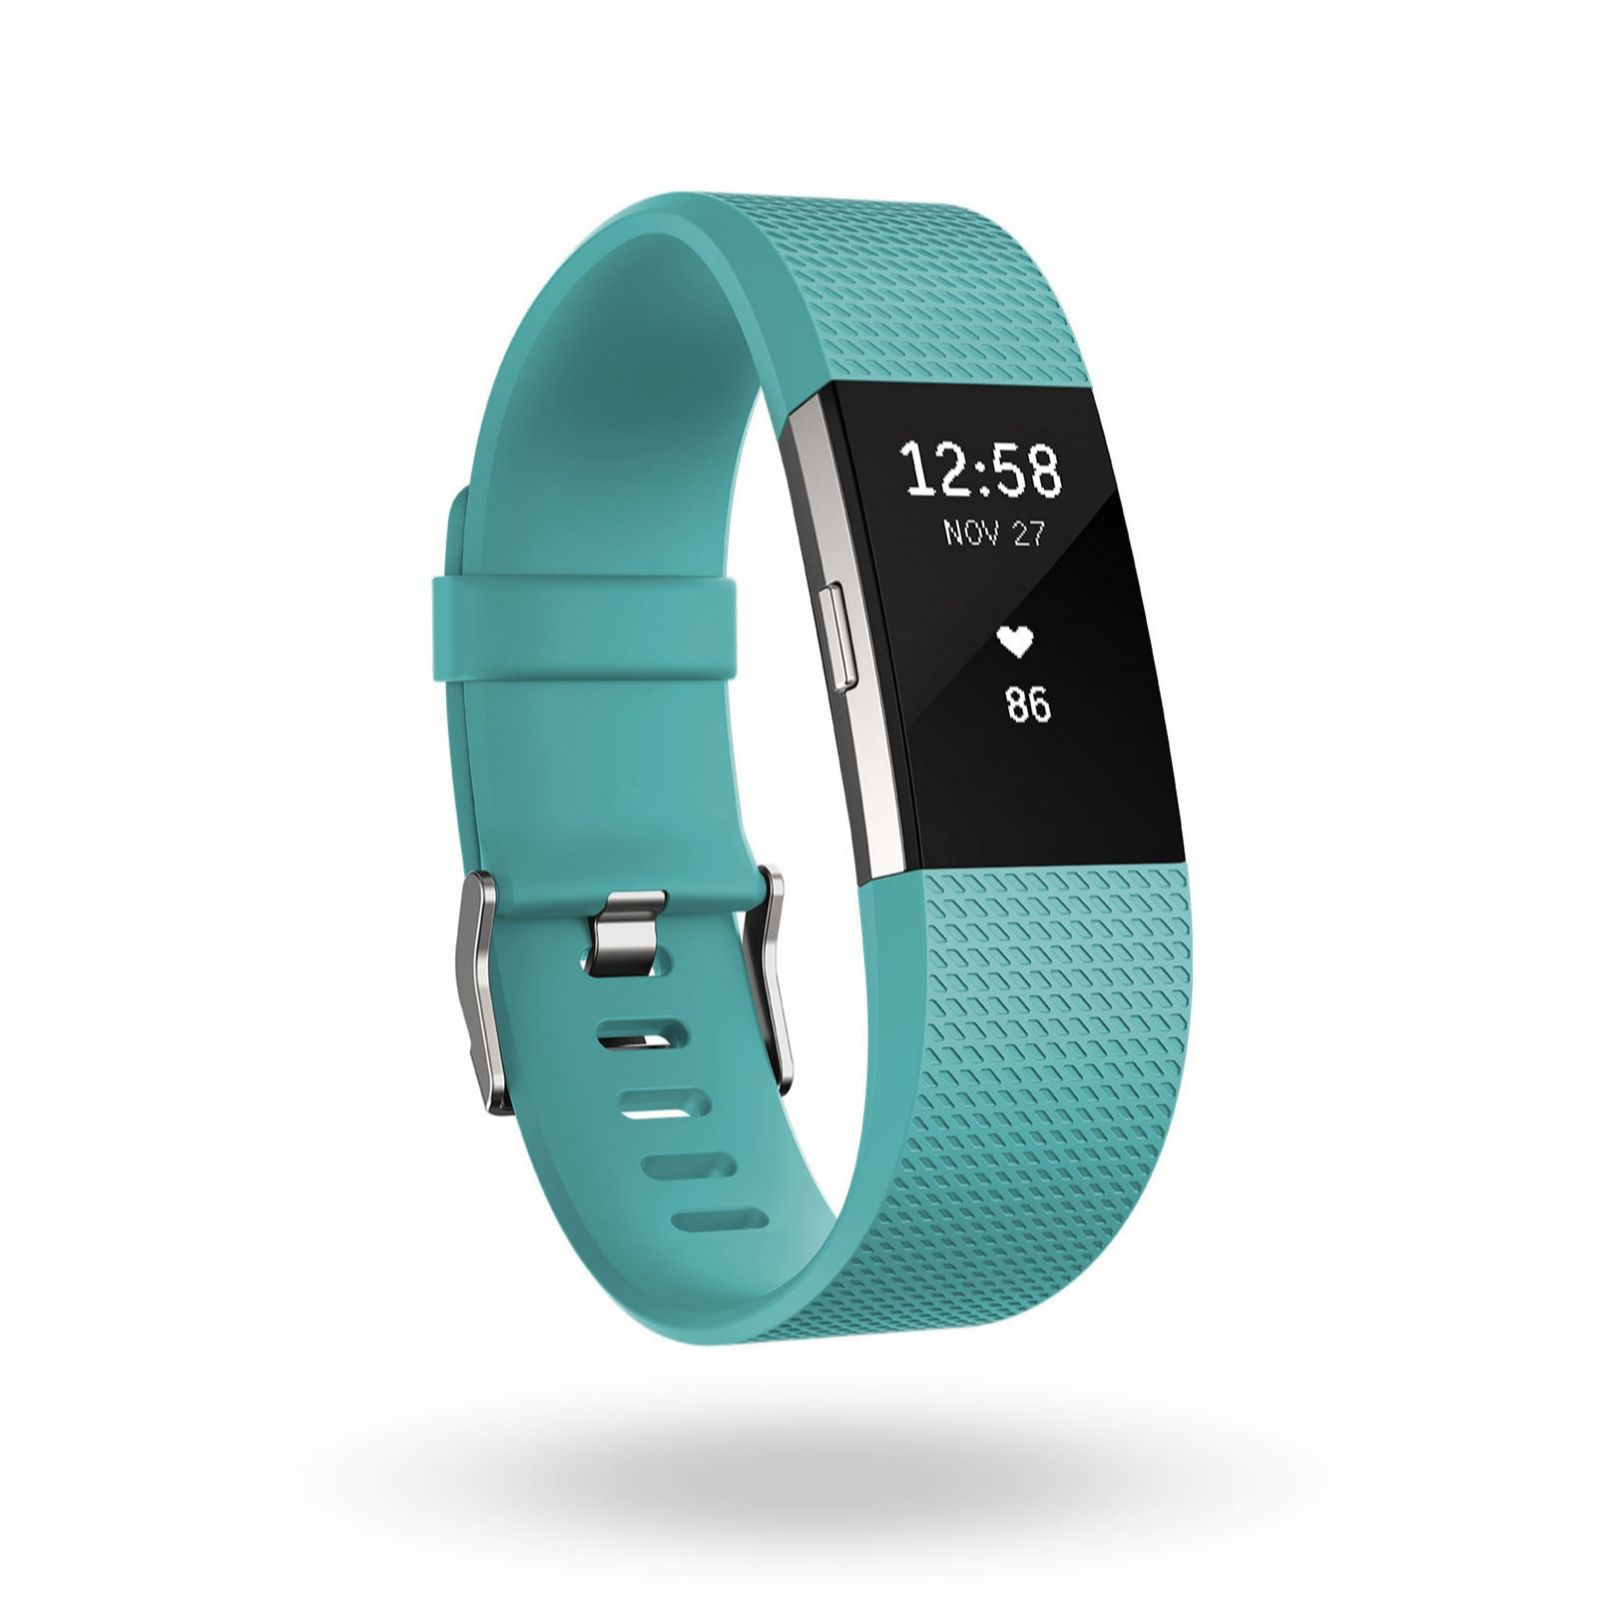 Fitbit Charge 2 Activity & Sleep Tracker with Heart Rate Monitor - QVC UK